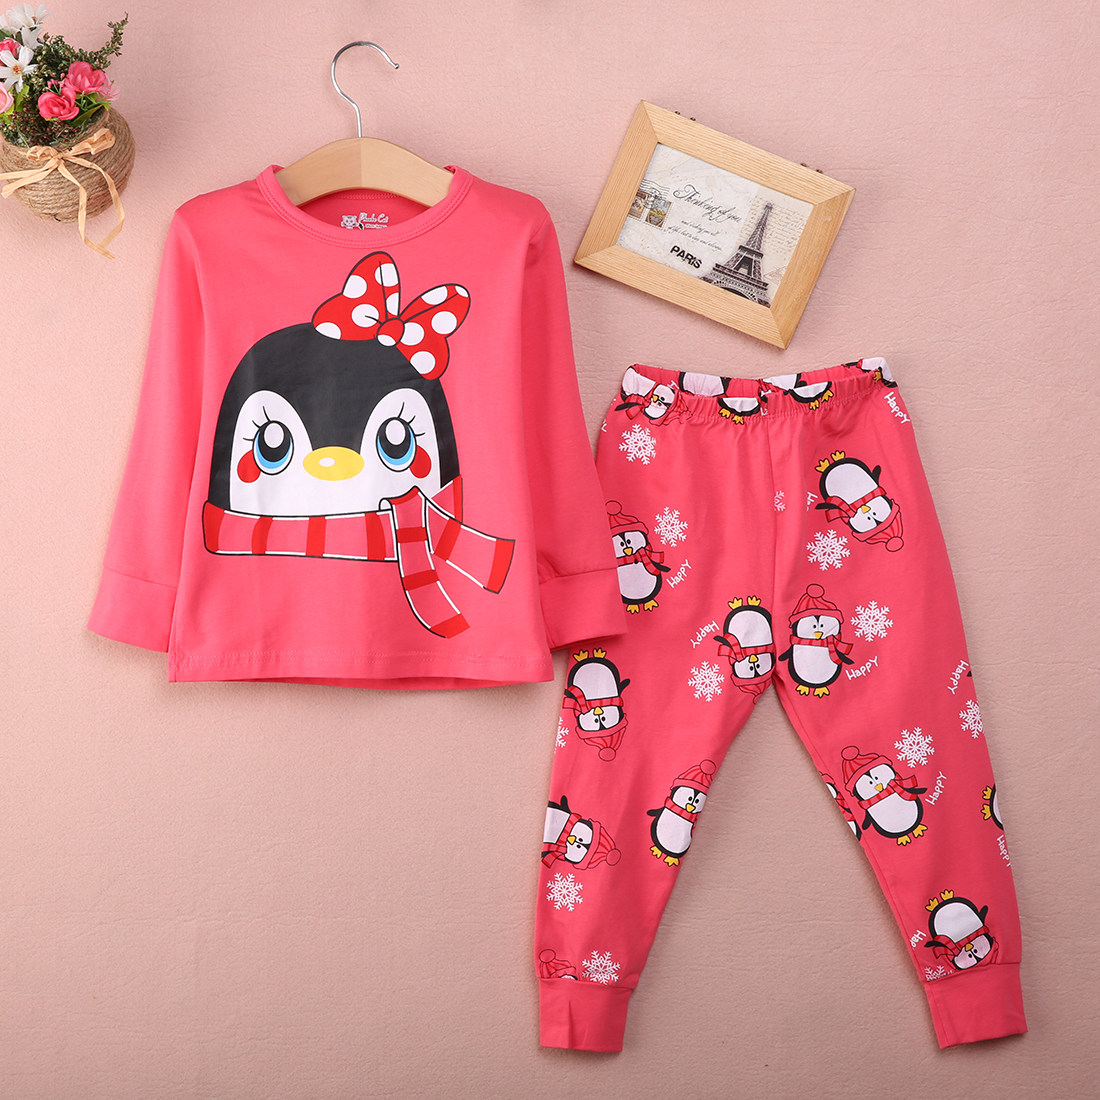 Autumn Winter Warm Kids Baby Girls   Pajama     Set   Two Pieces Sleepwear Nightwear   Pajamas     Sets   Tops and Long Pants Outfits